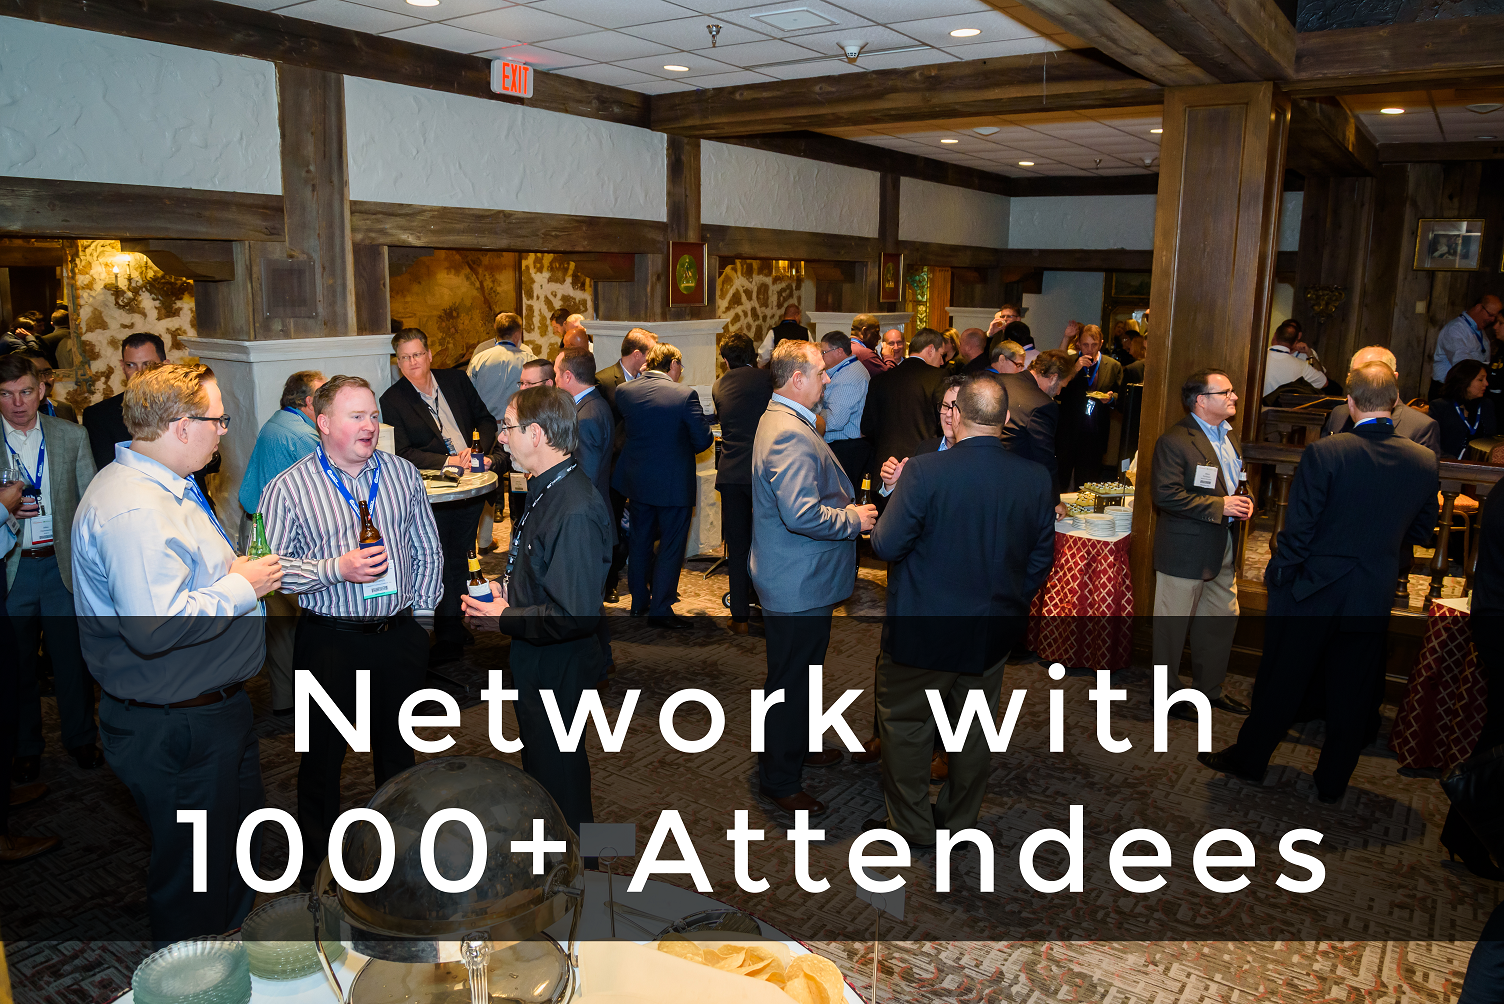 Network with Attendees!